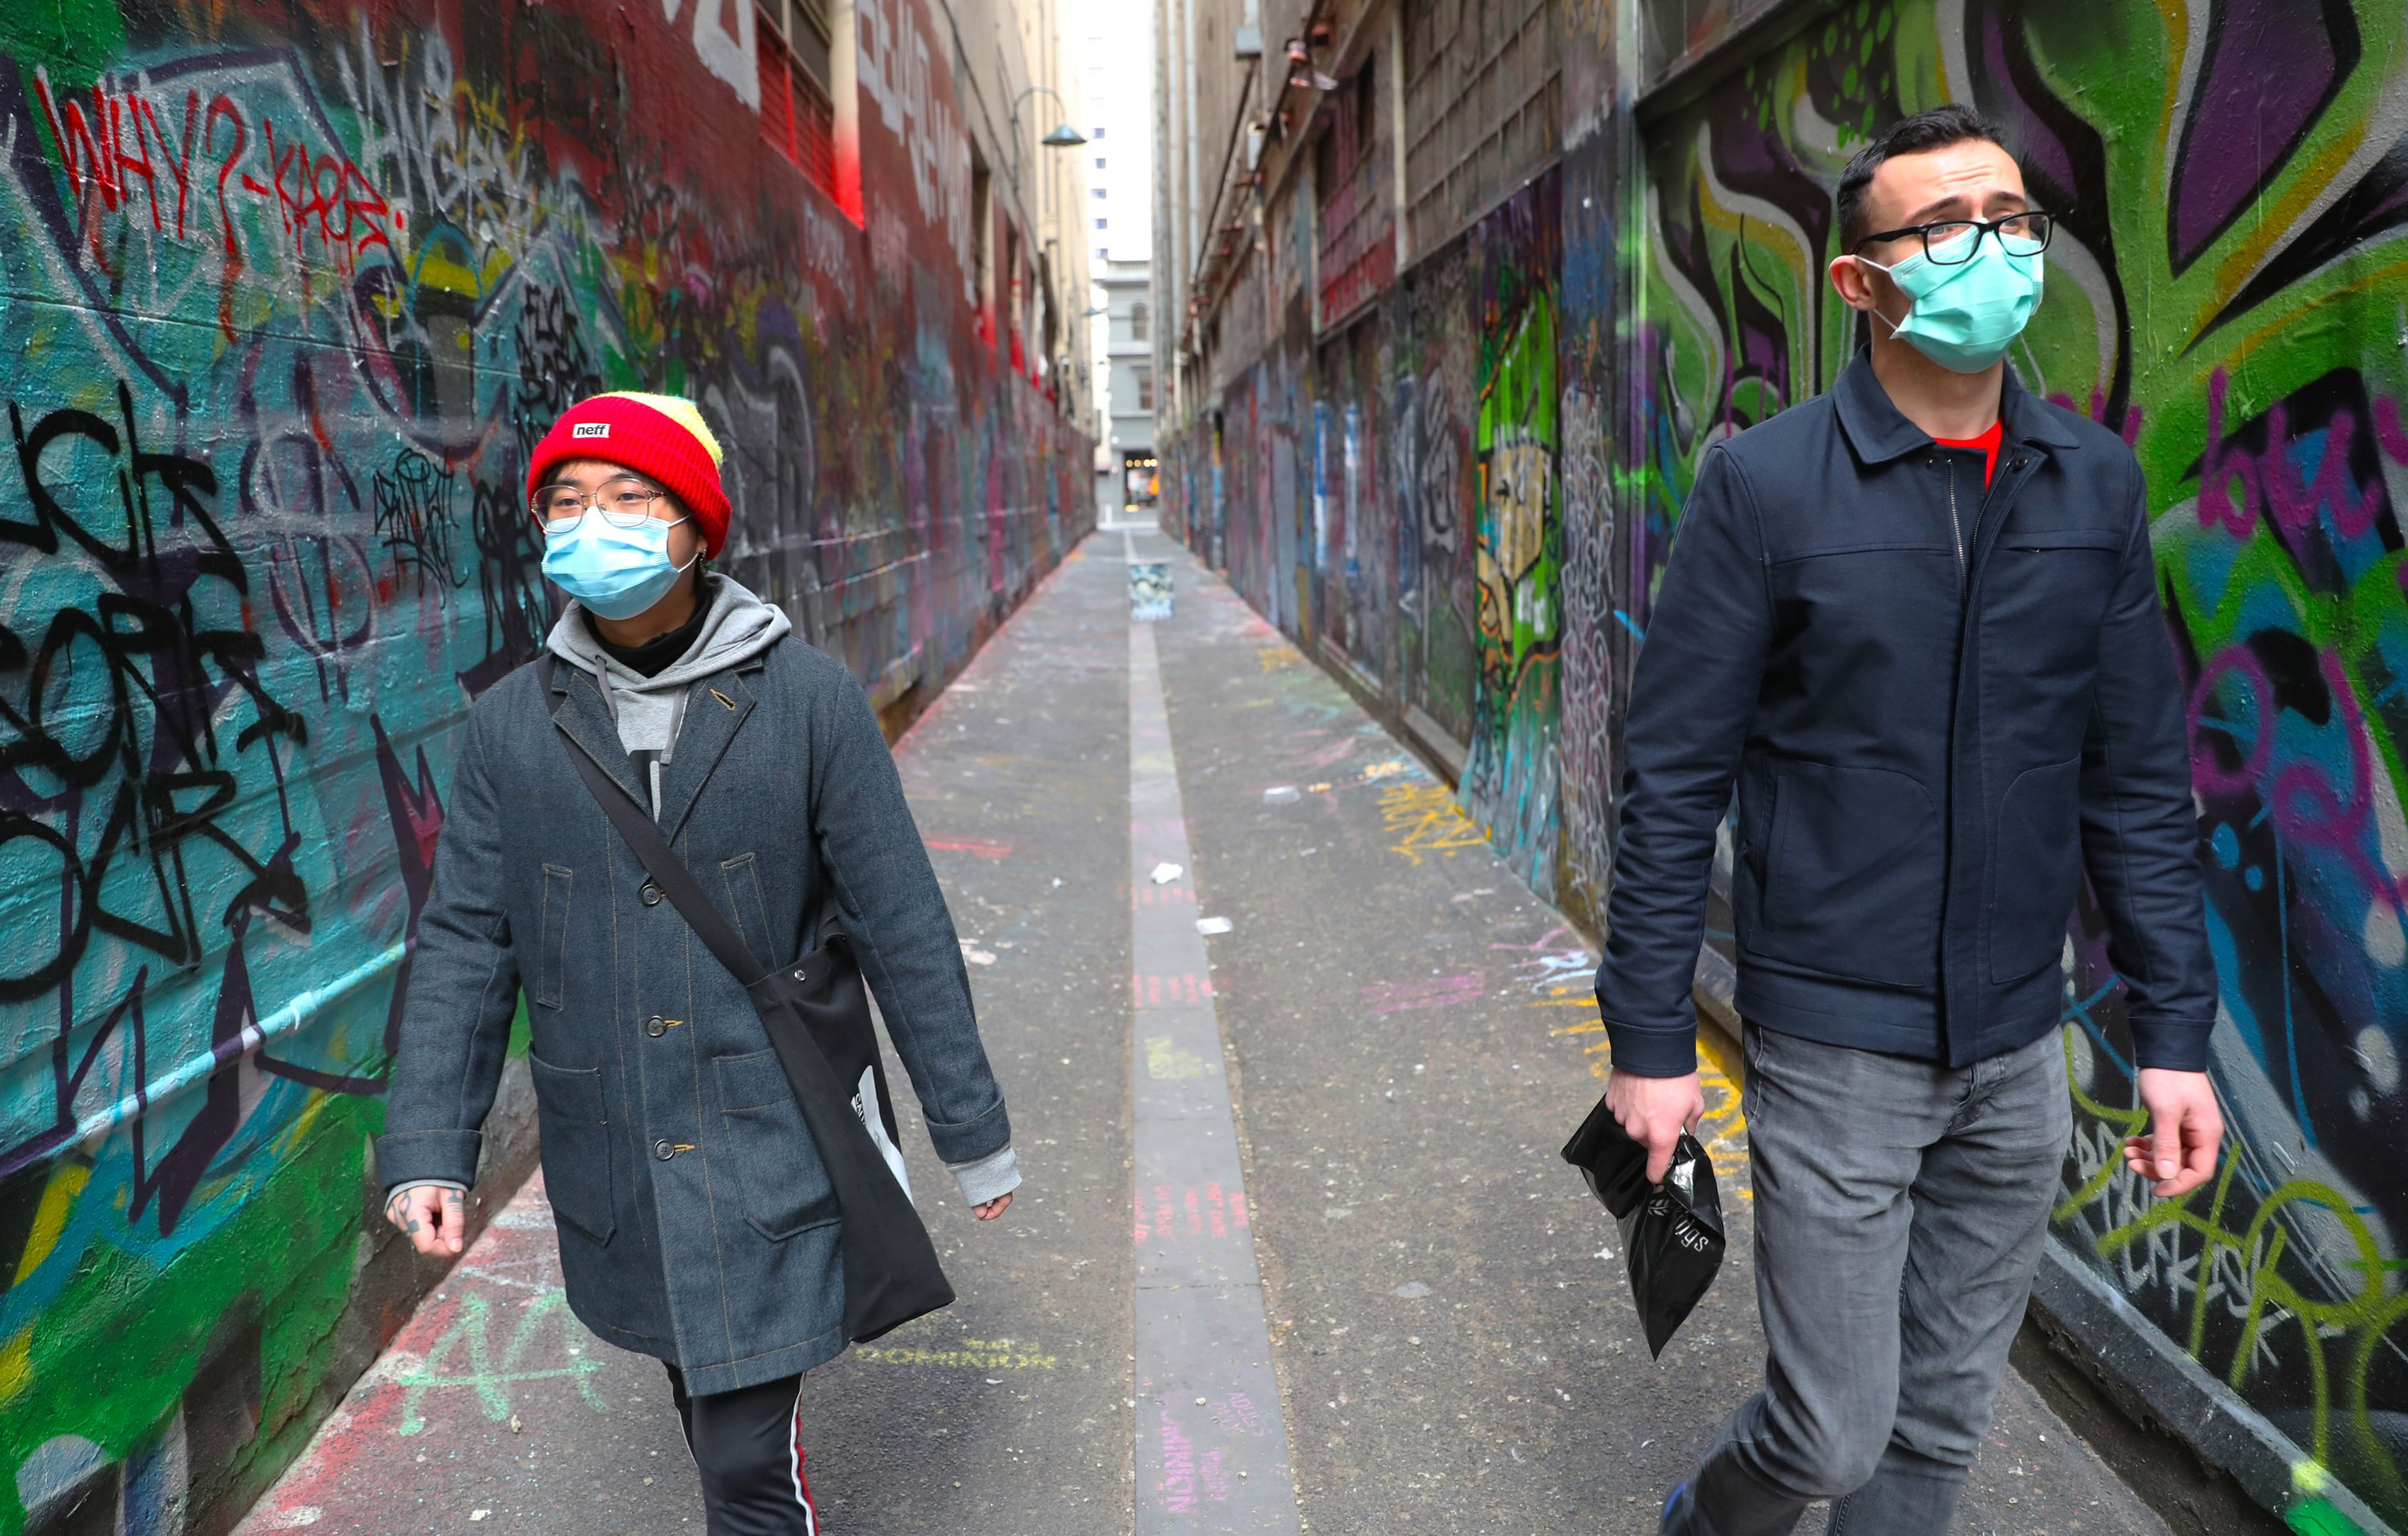 People are seen wearing masks in Union lane in Melbourne, Australia, July 19, 2020. (AAP Image via REUTERS)